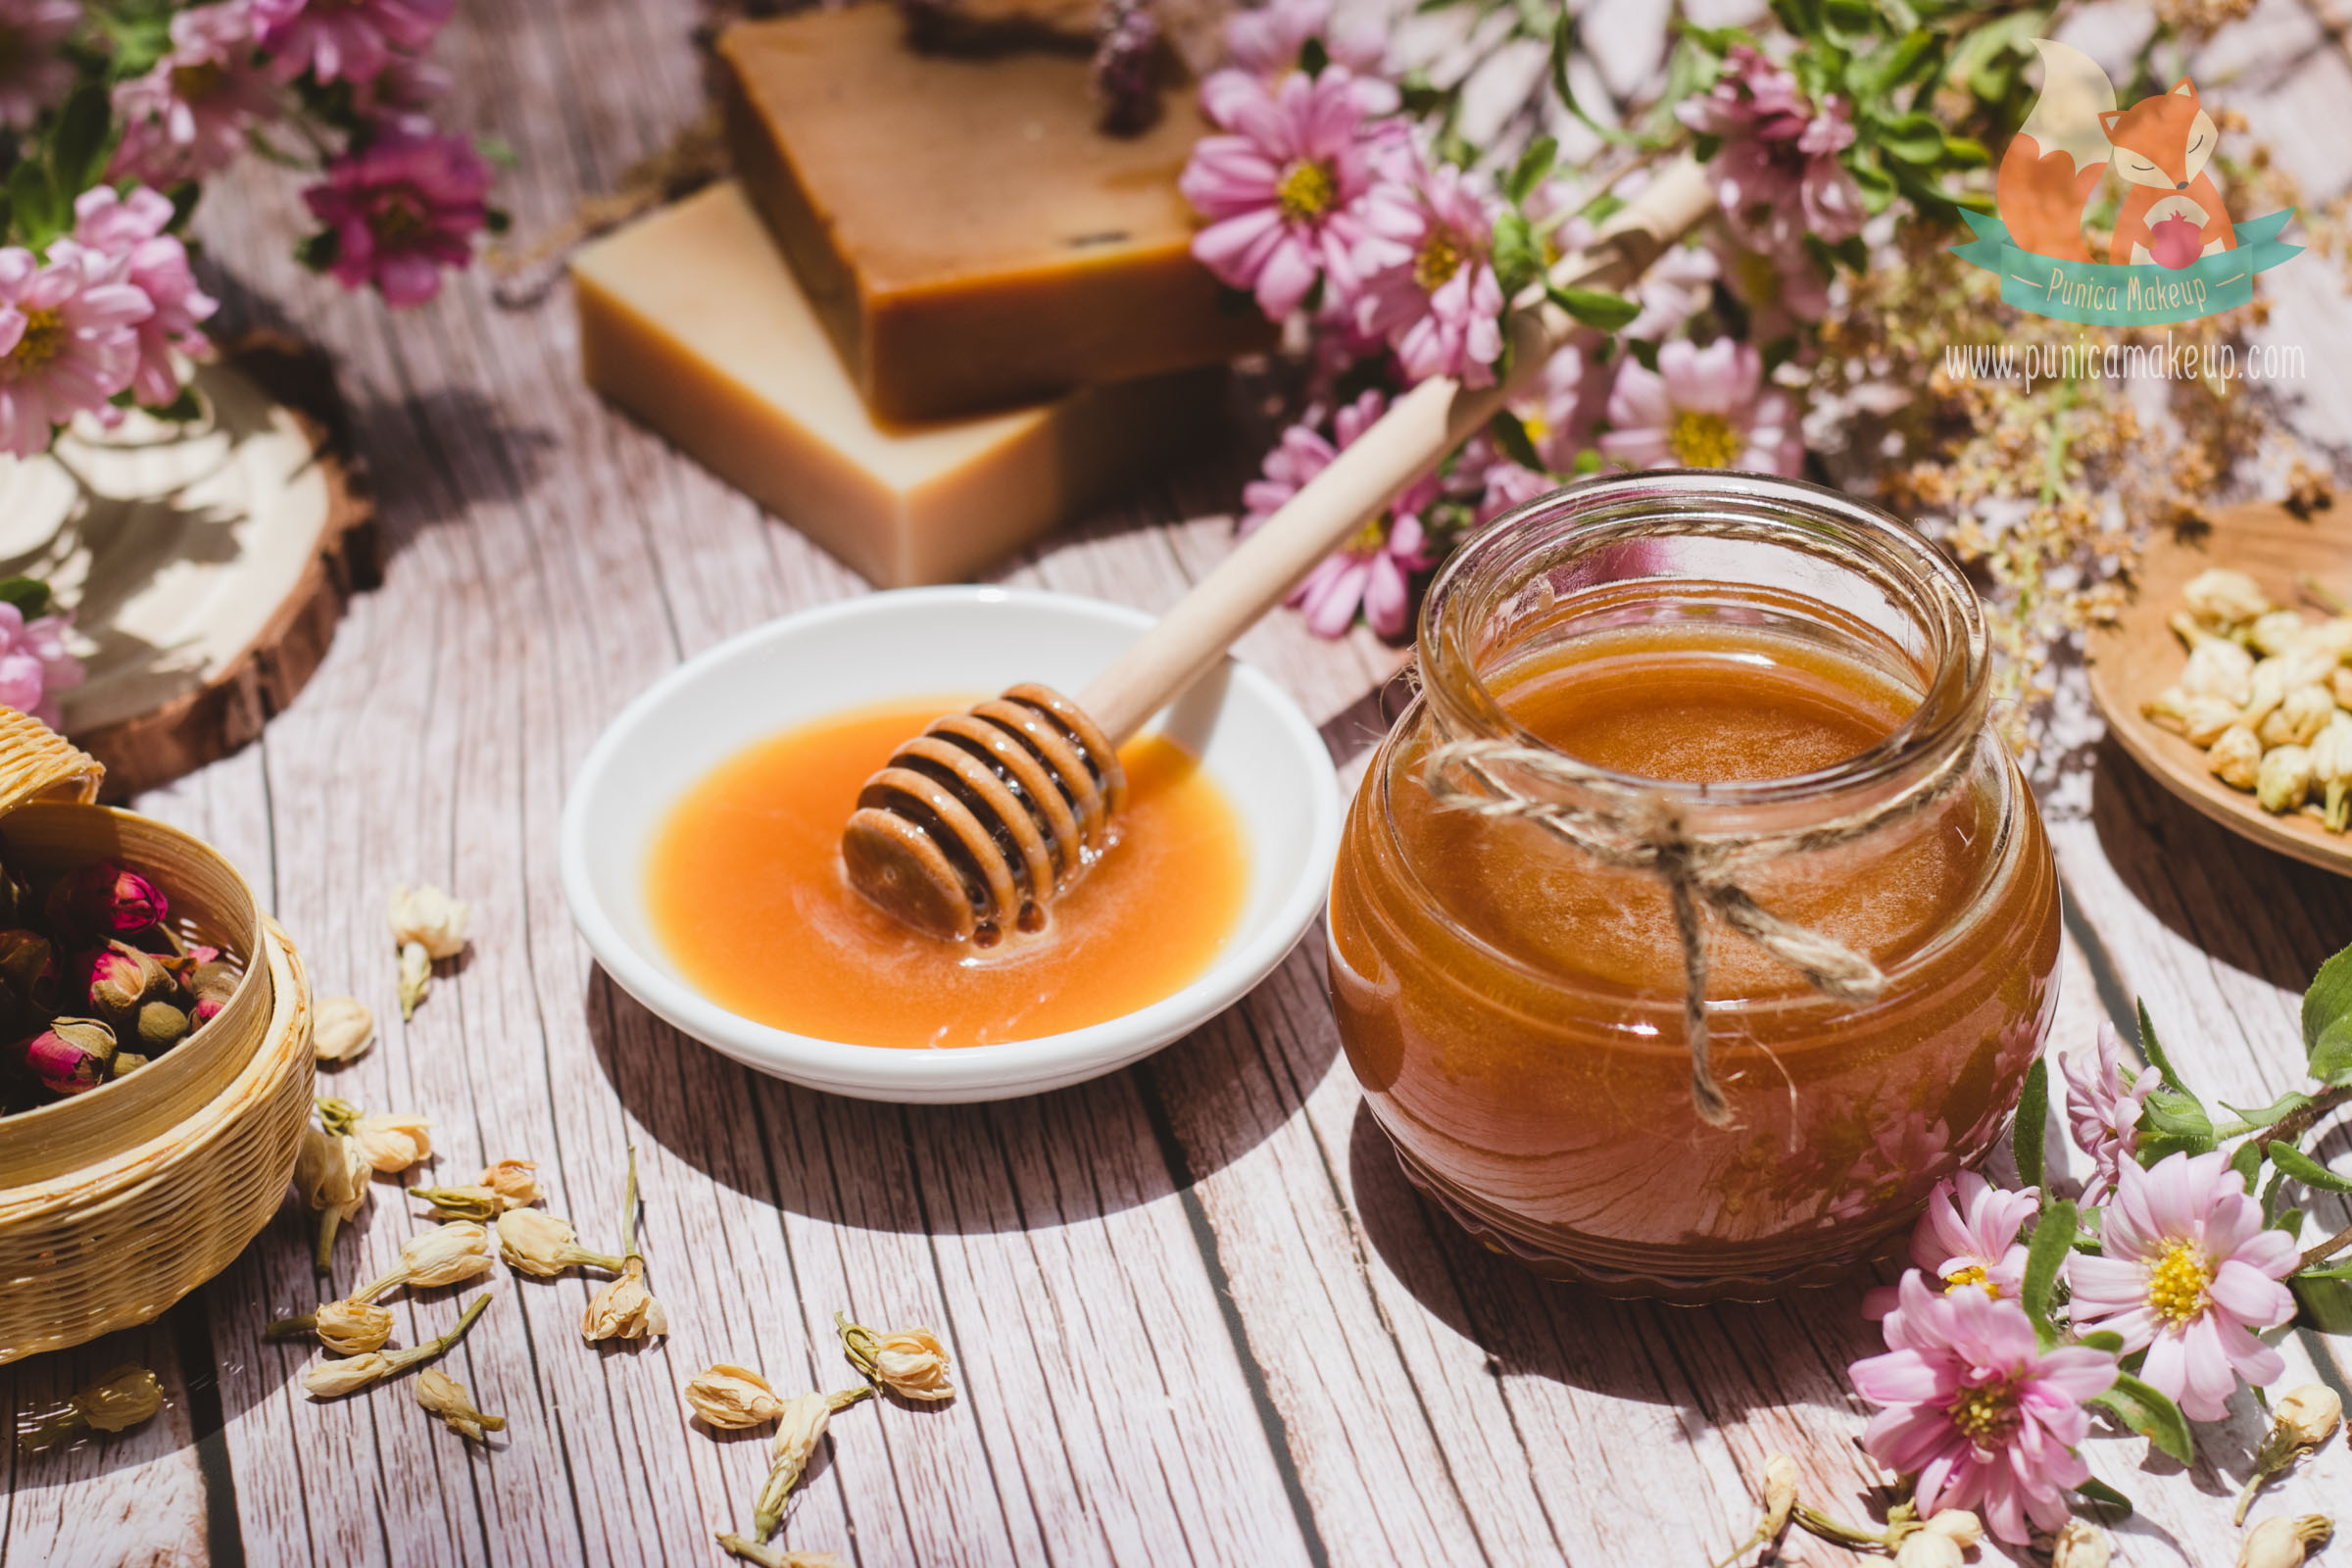 Manuka honey benefits the skin